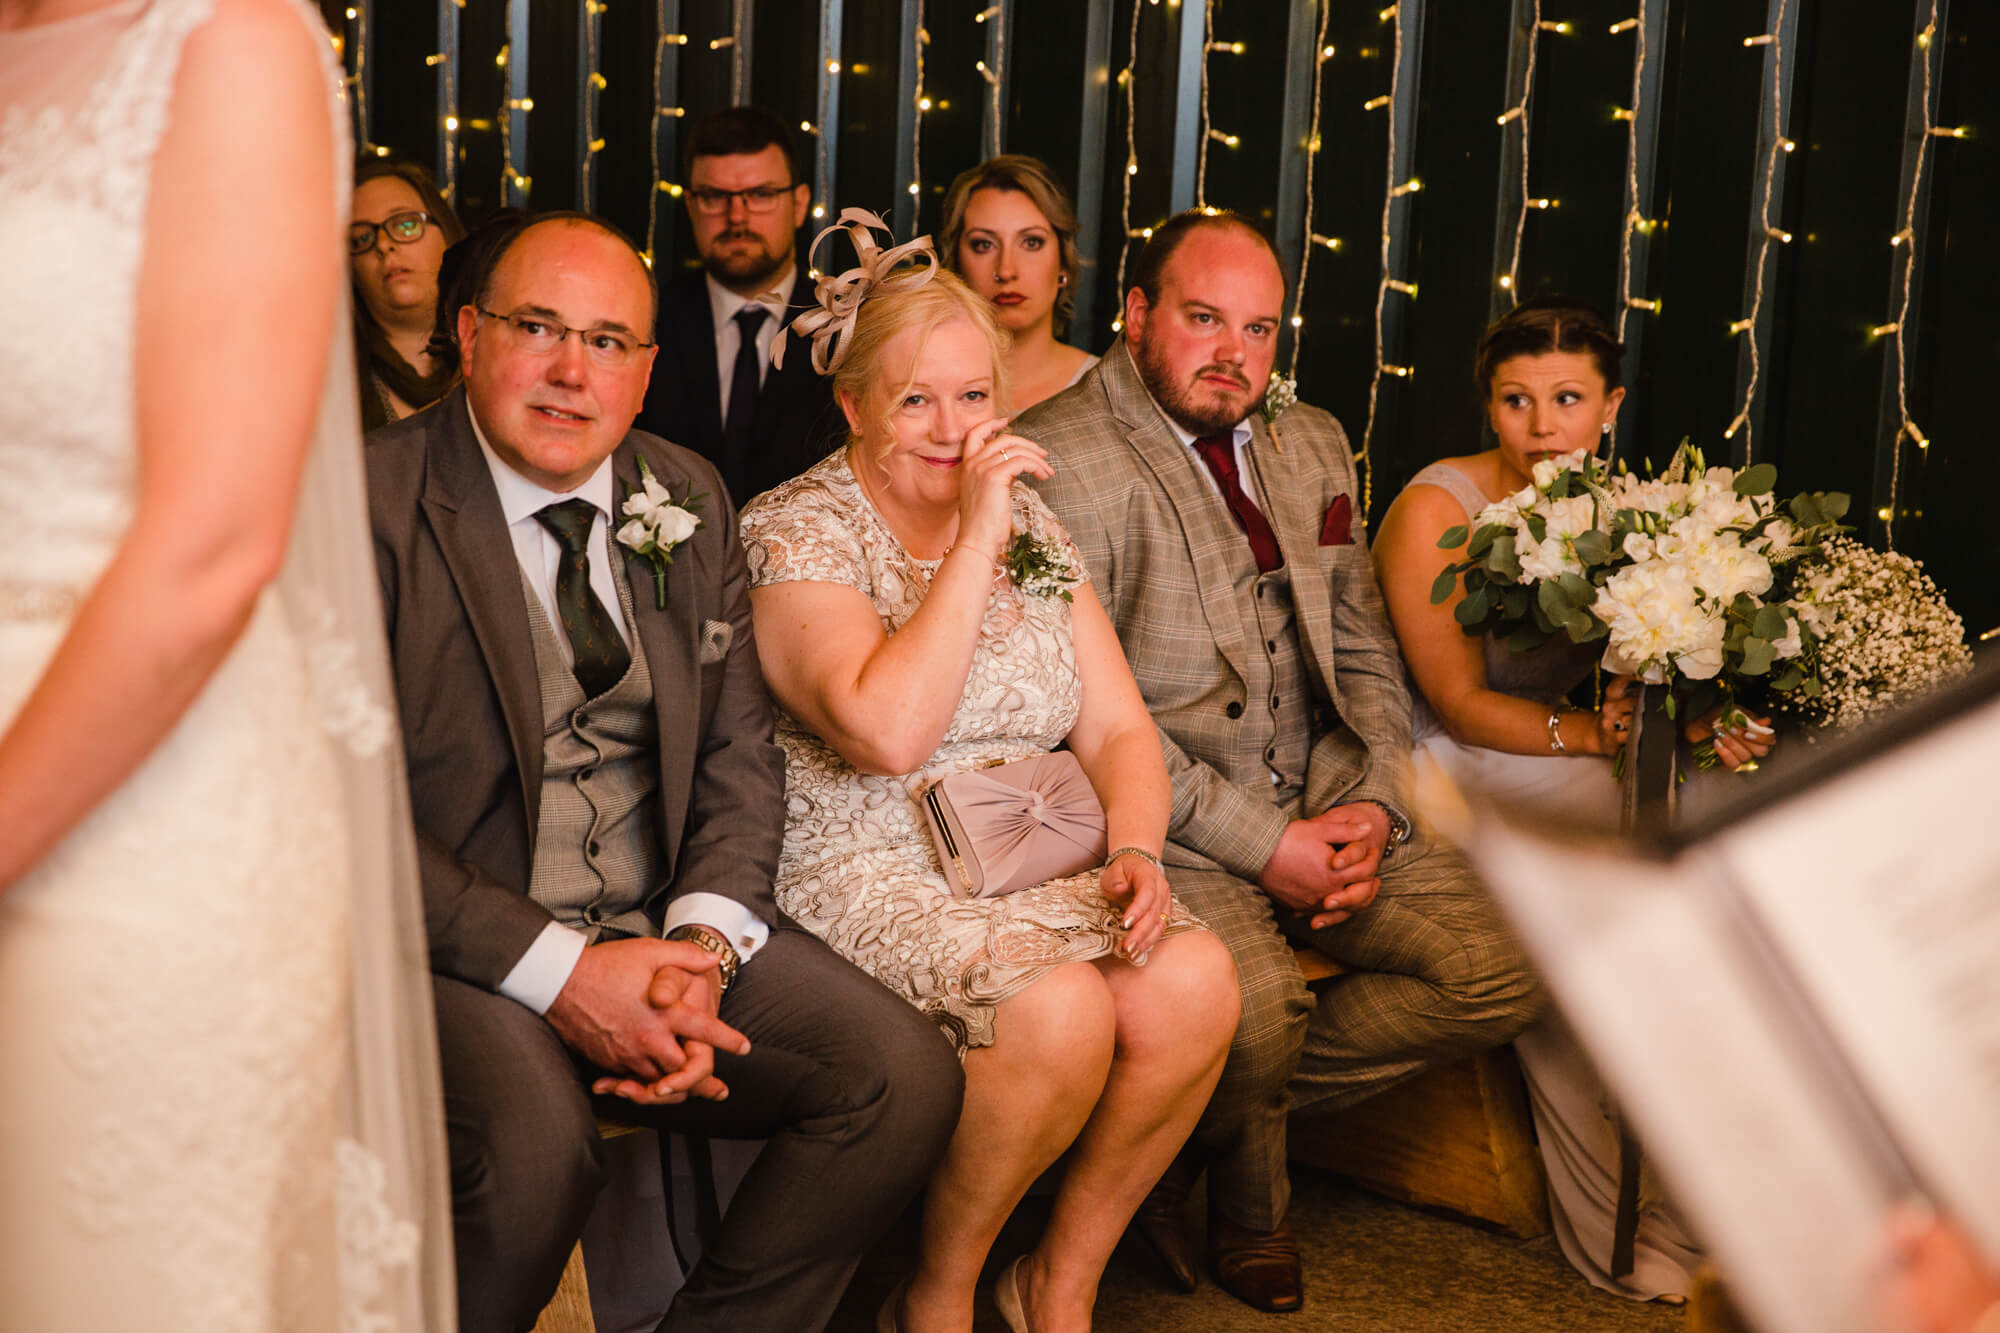 intimate moment as mother of bride wipes away a tear during wedding vows